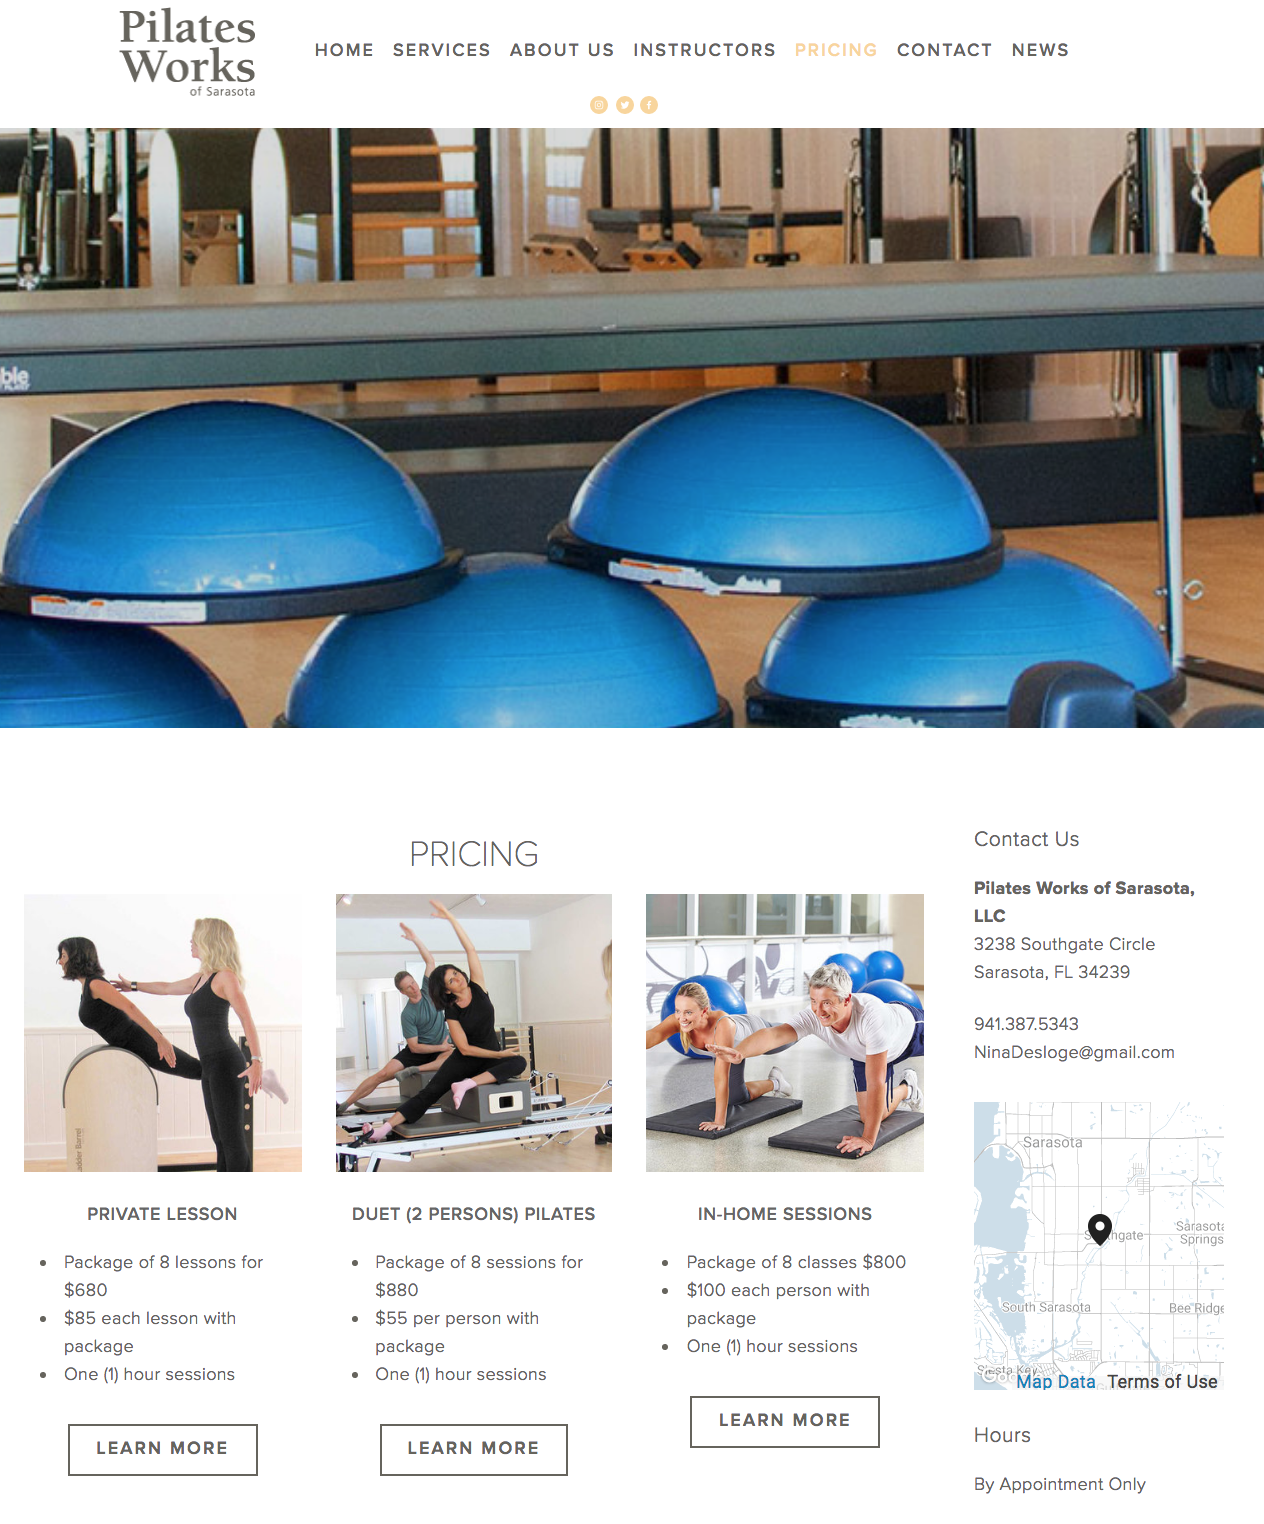 pilates-works-of-sarasota-pricing-page.png